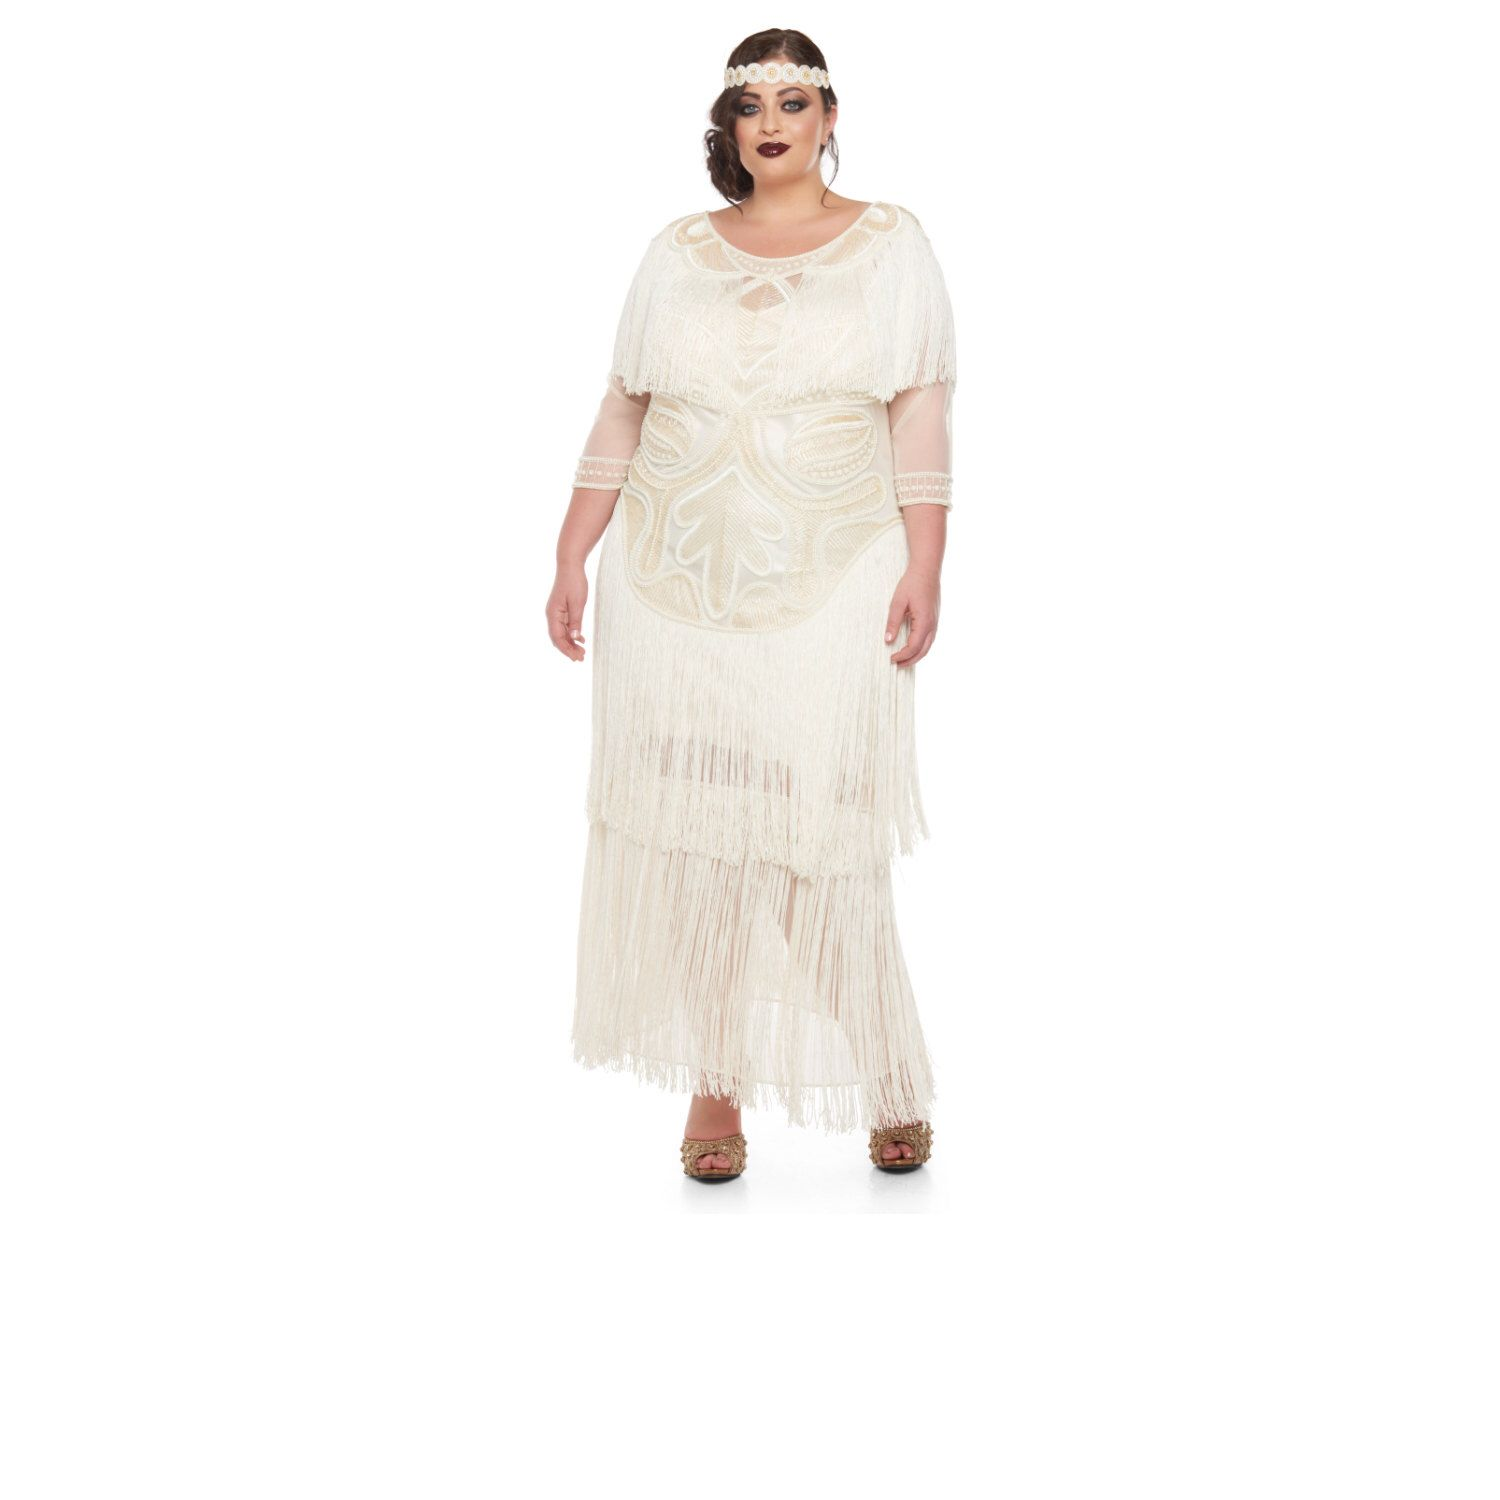 Plus Size Wedding Gown Cream Glam Prom Maxi Dress with Sleeves 20s ...